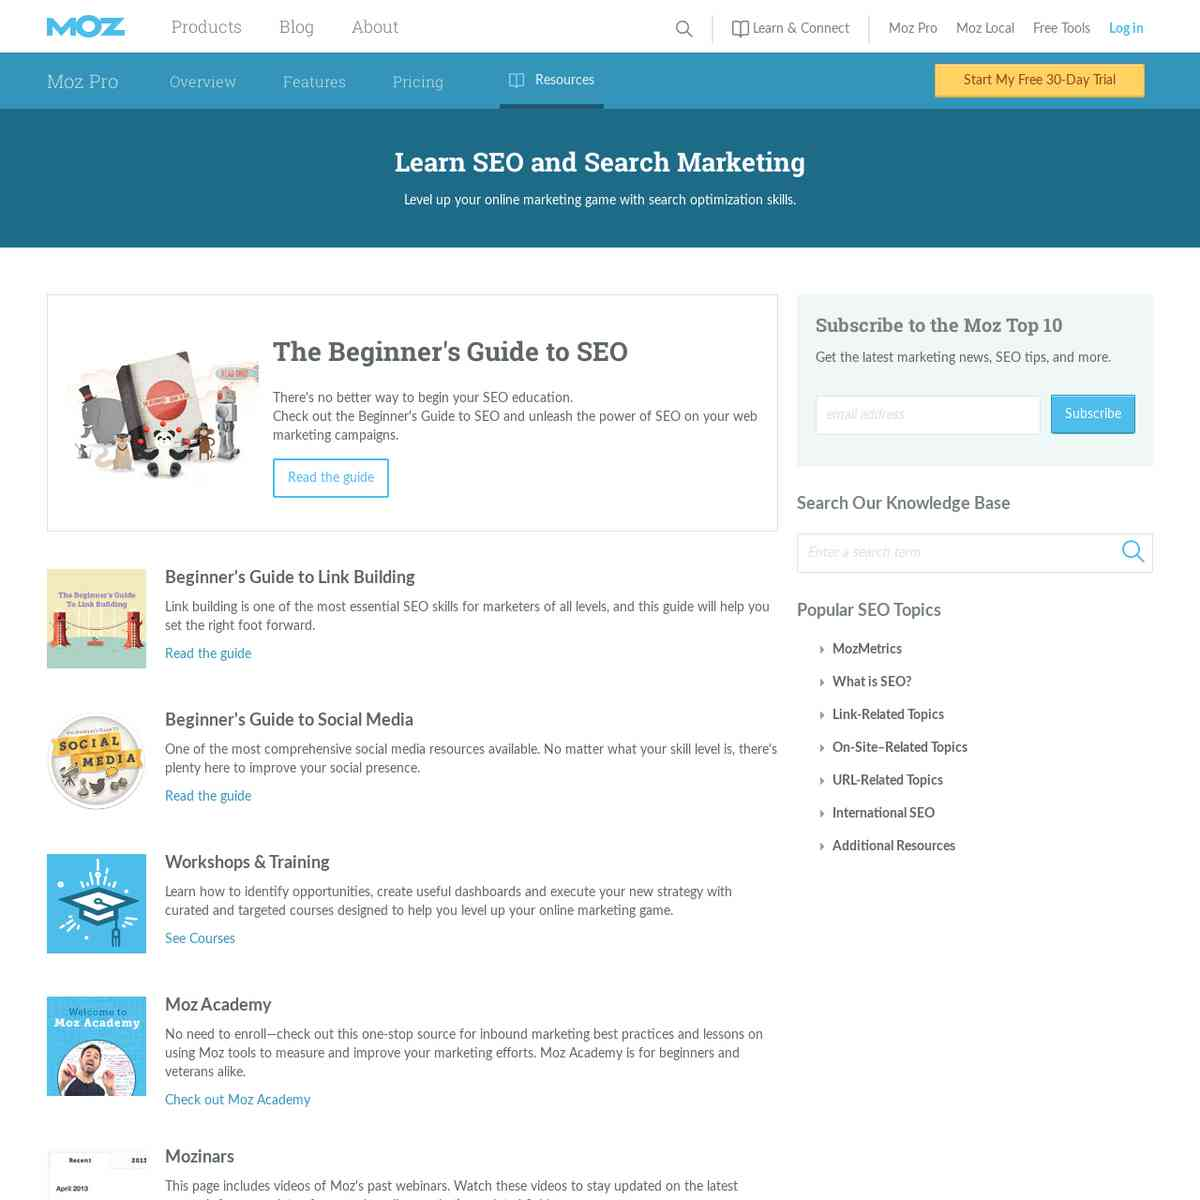 Learn SEO and Social Media - Moz